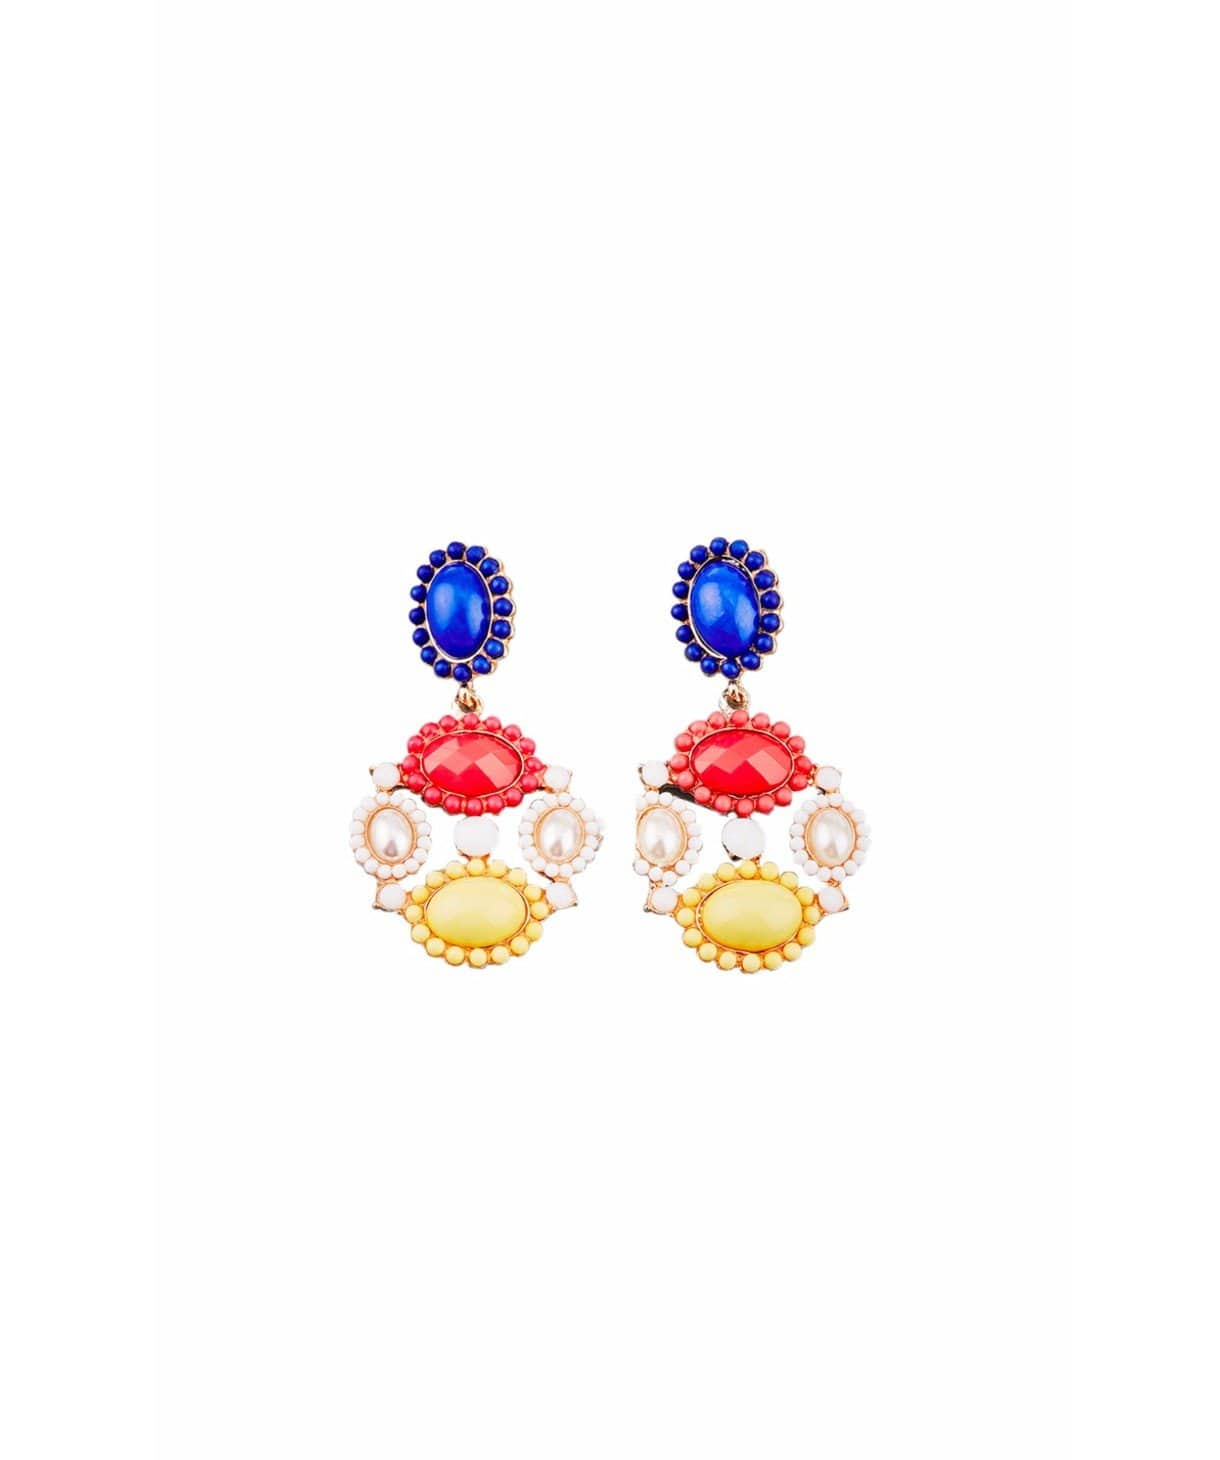 Mix & Match Earrings - Uptownie